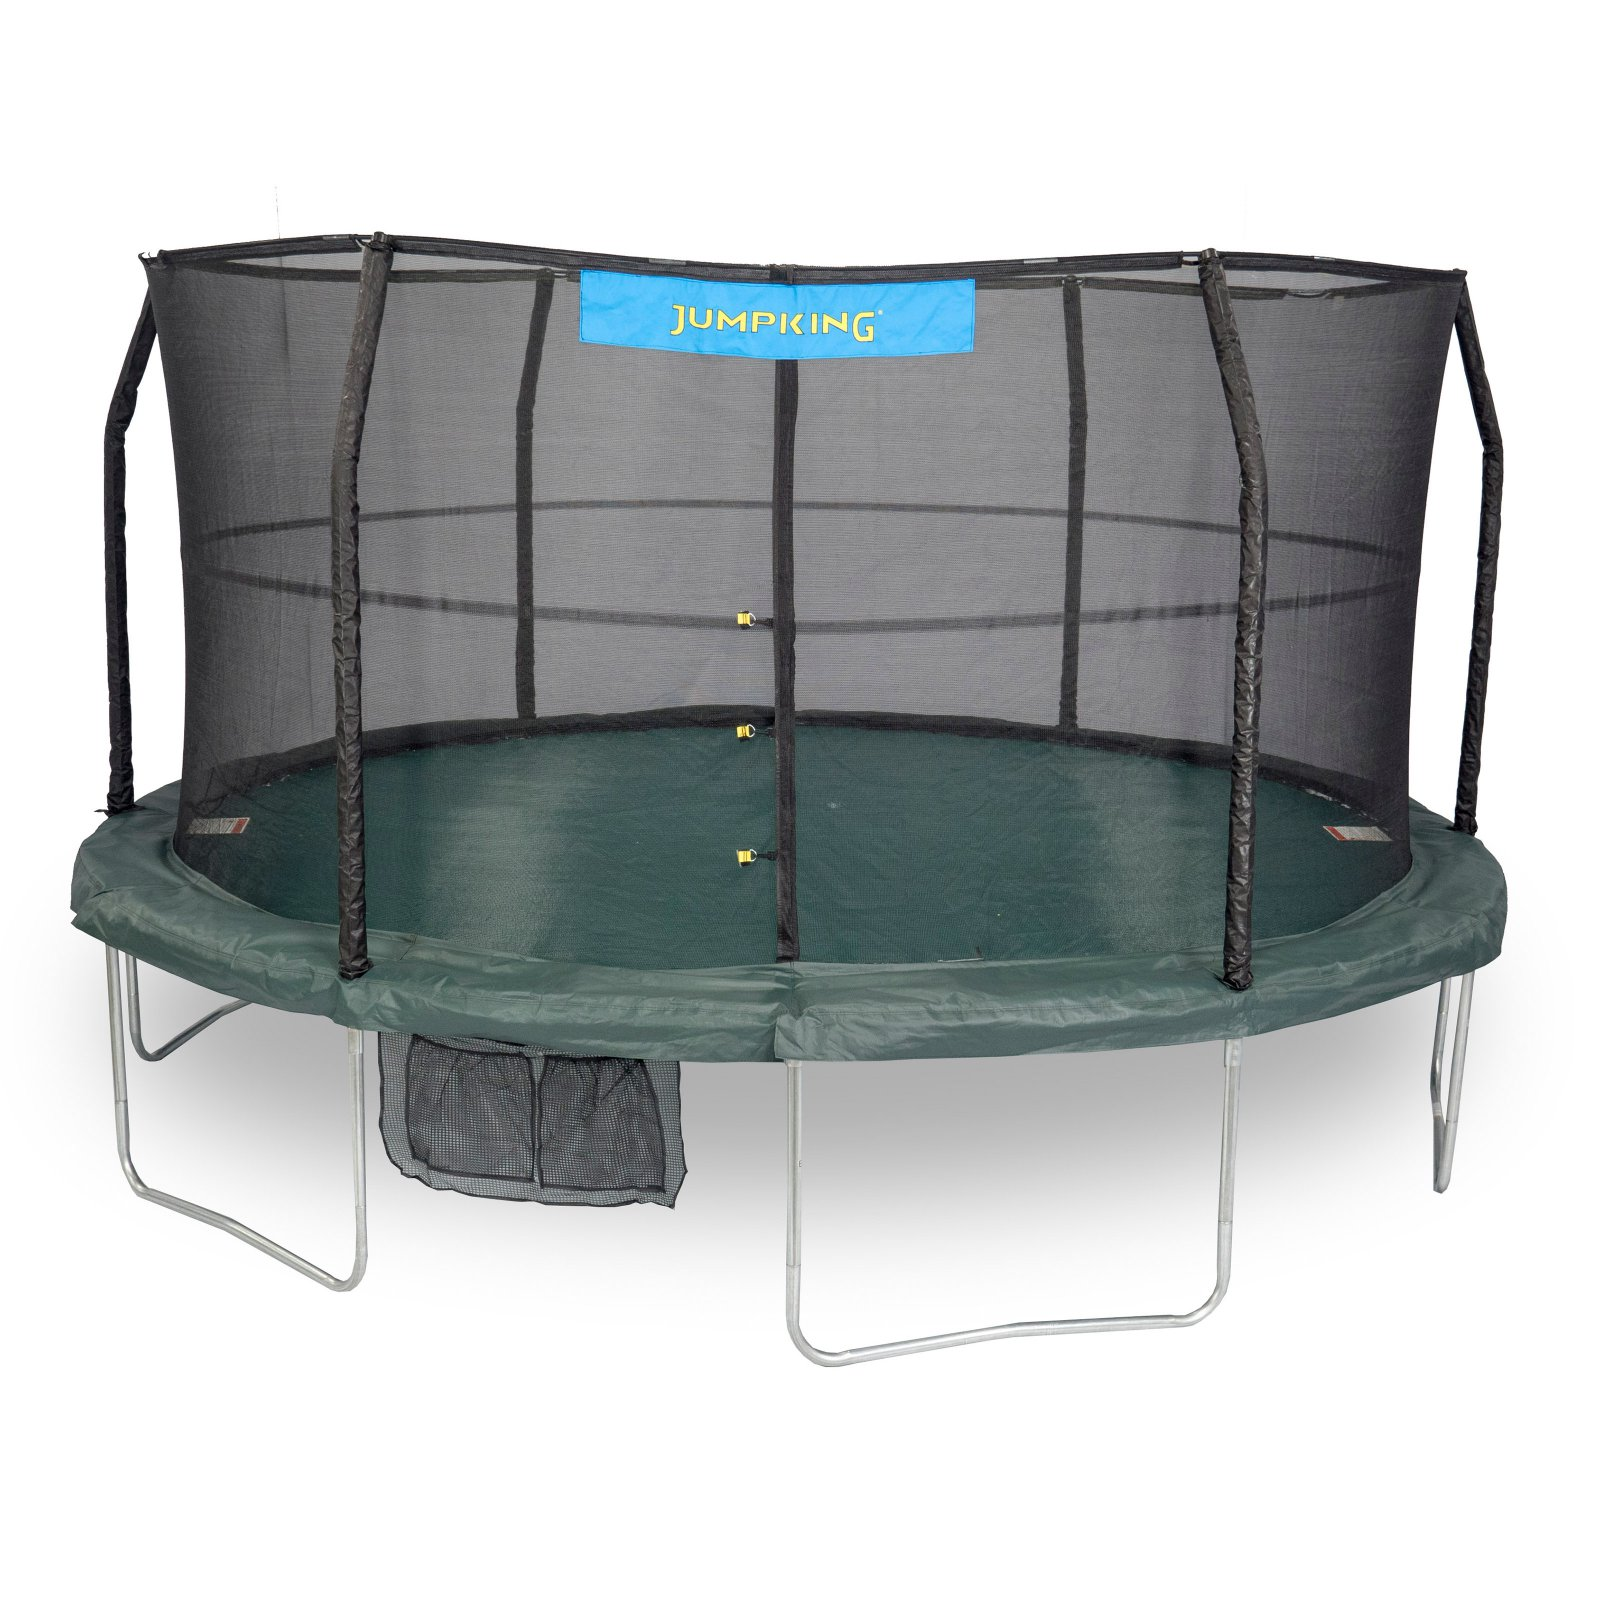 Jumpking 15-Foot Trampoline, with Safety Enclosure Combo, Green (Box 1 of 2)